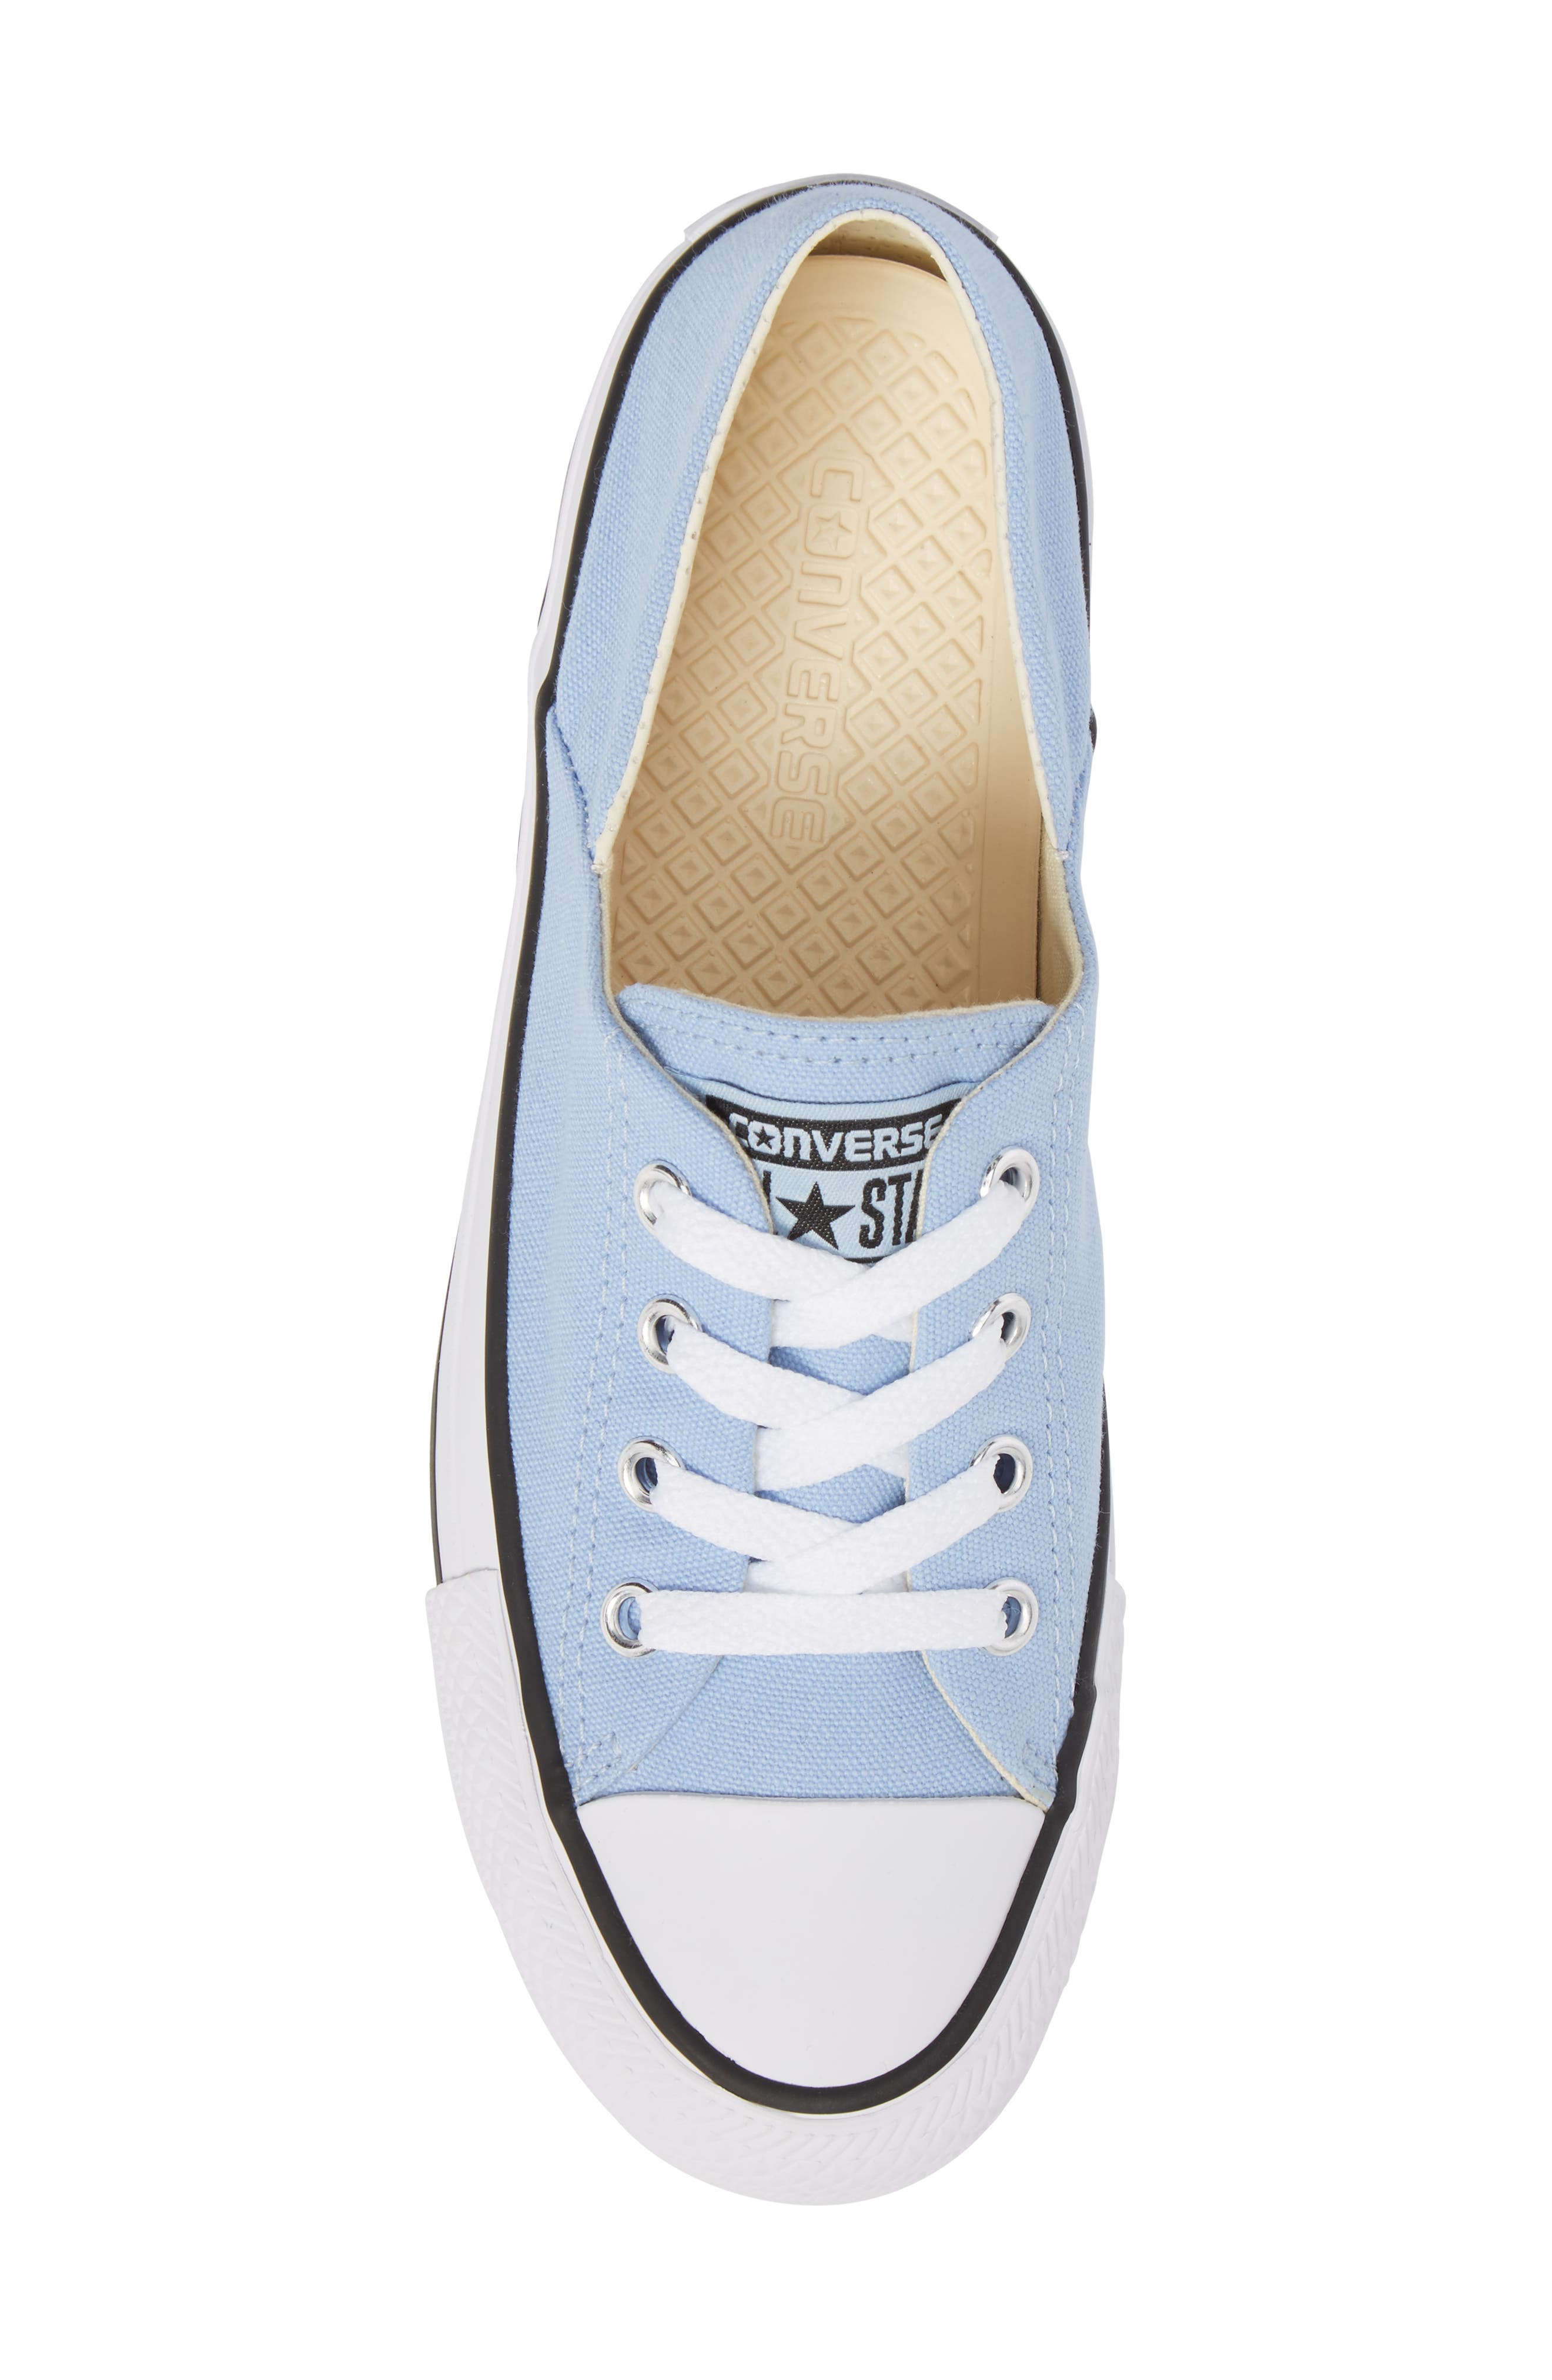 Chuck Taylor<sup>®</sup> All Star<sup>®</sup> Coral Ox Low Top Sneaker,                             Alternate thumbnail 5, color,                             457